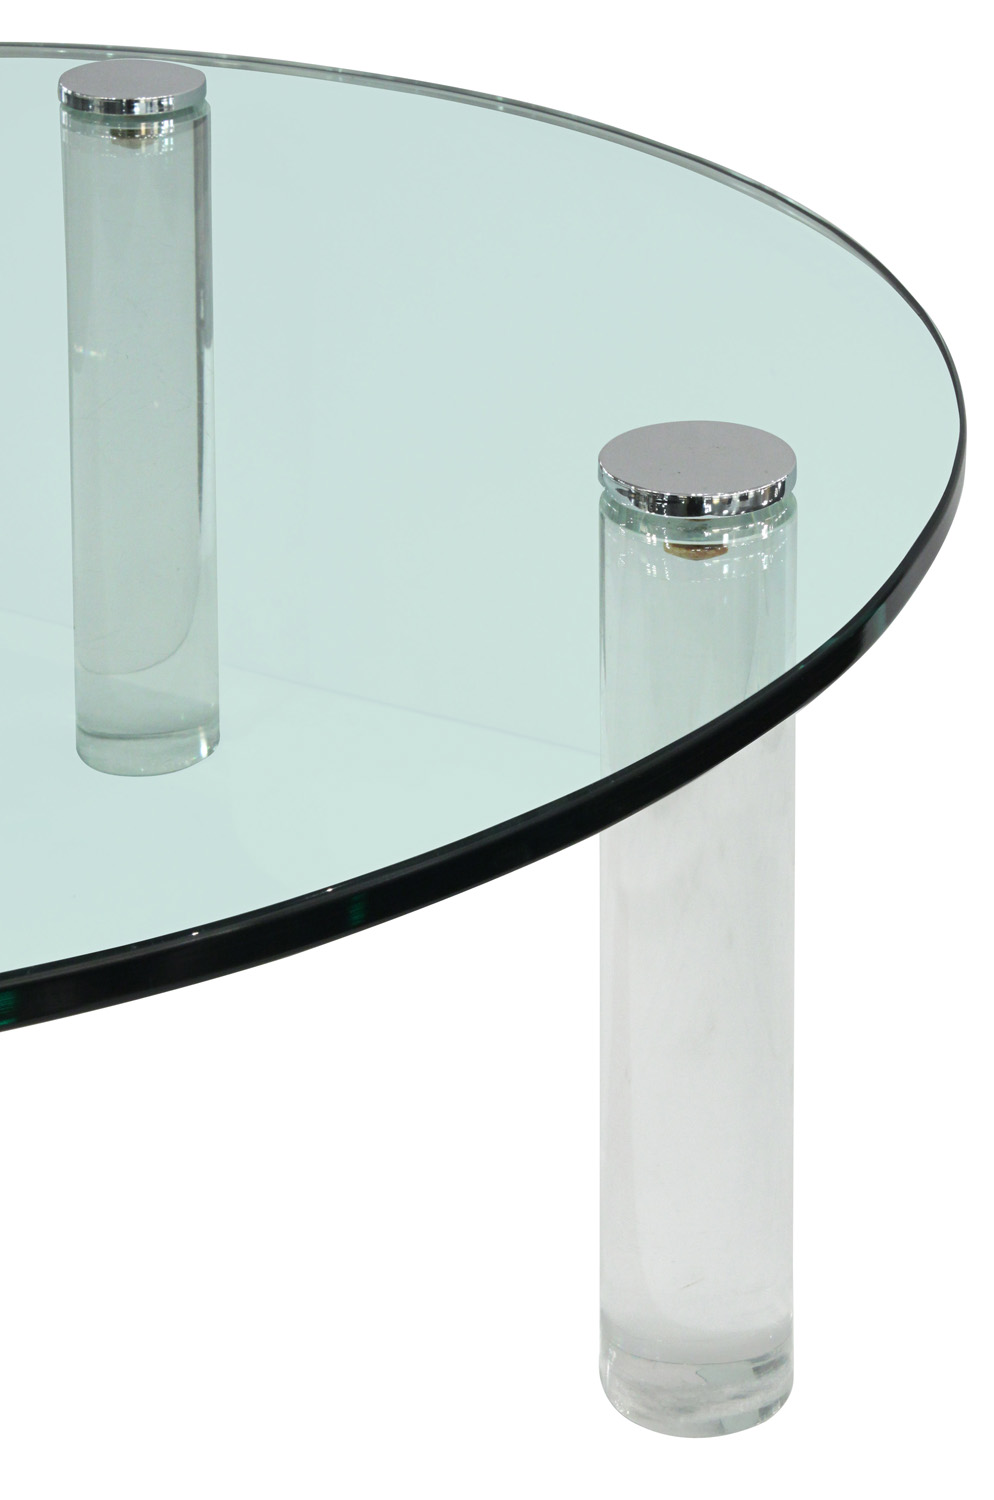 Pace 55 round lucite legs+gls top coffeetable382 detail1 hires.jpg